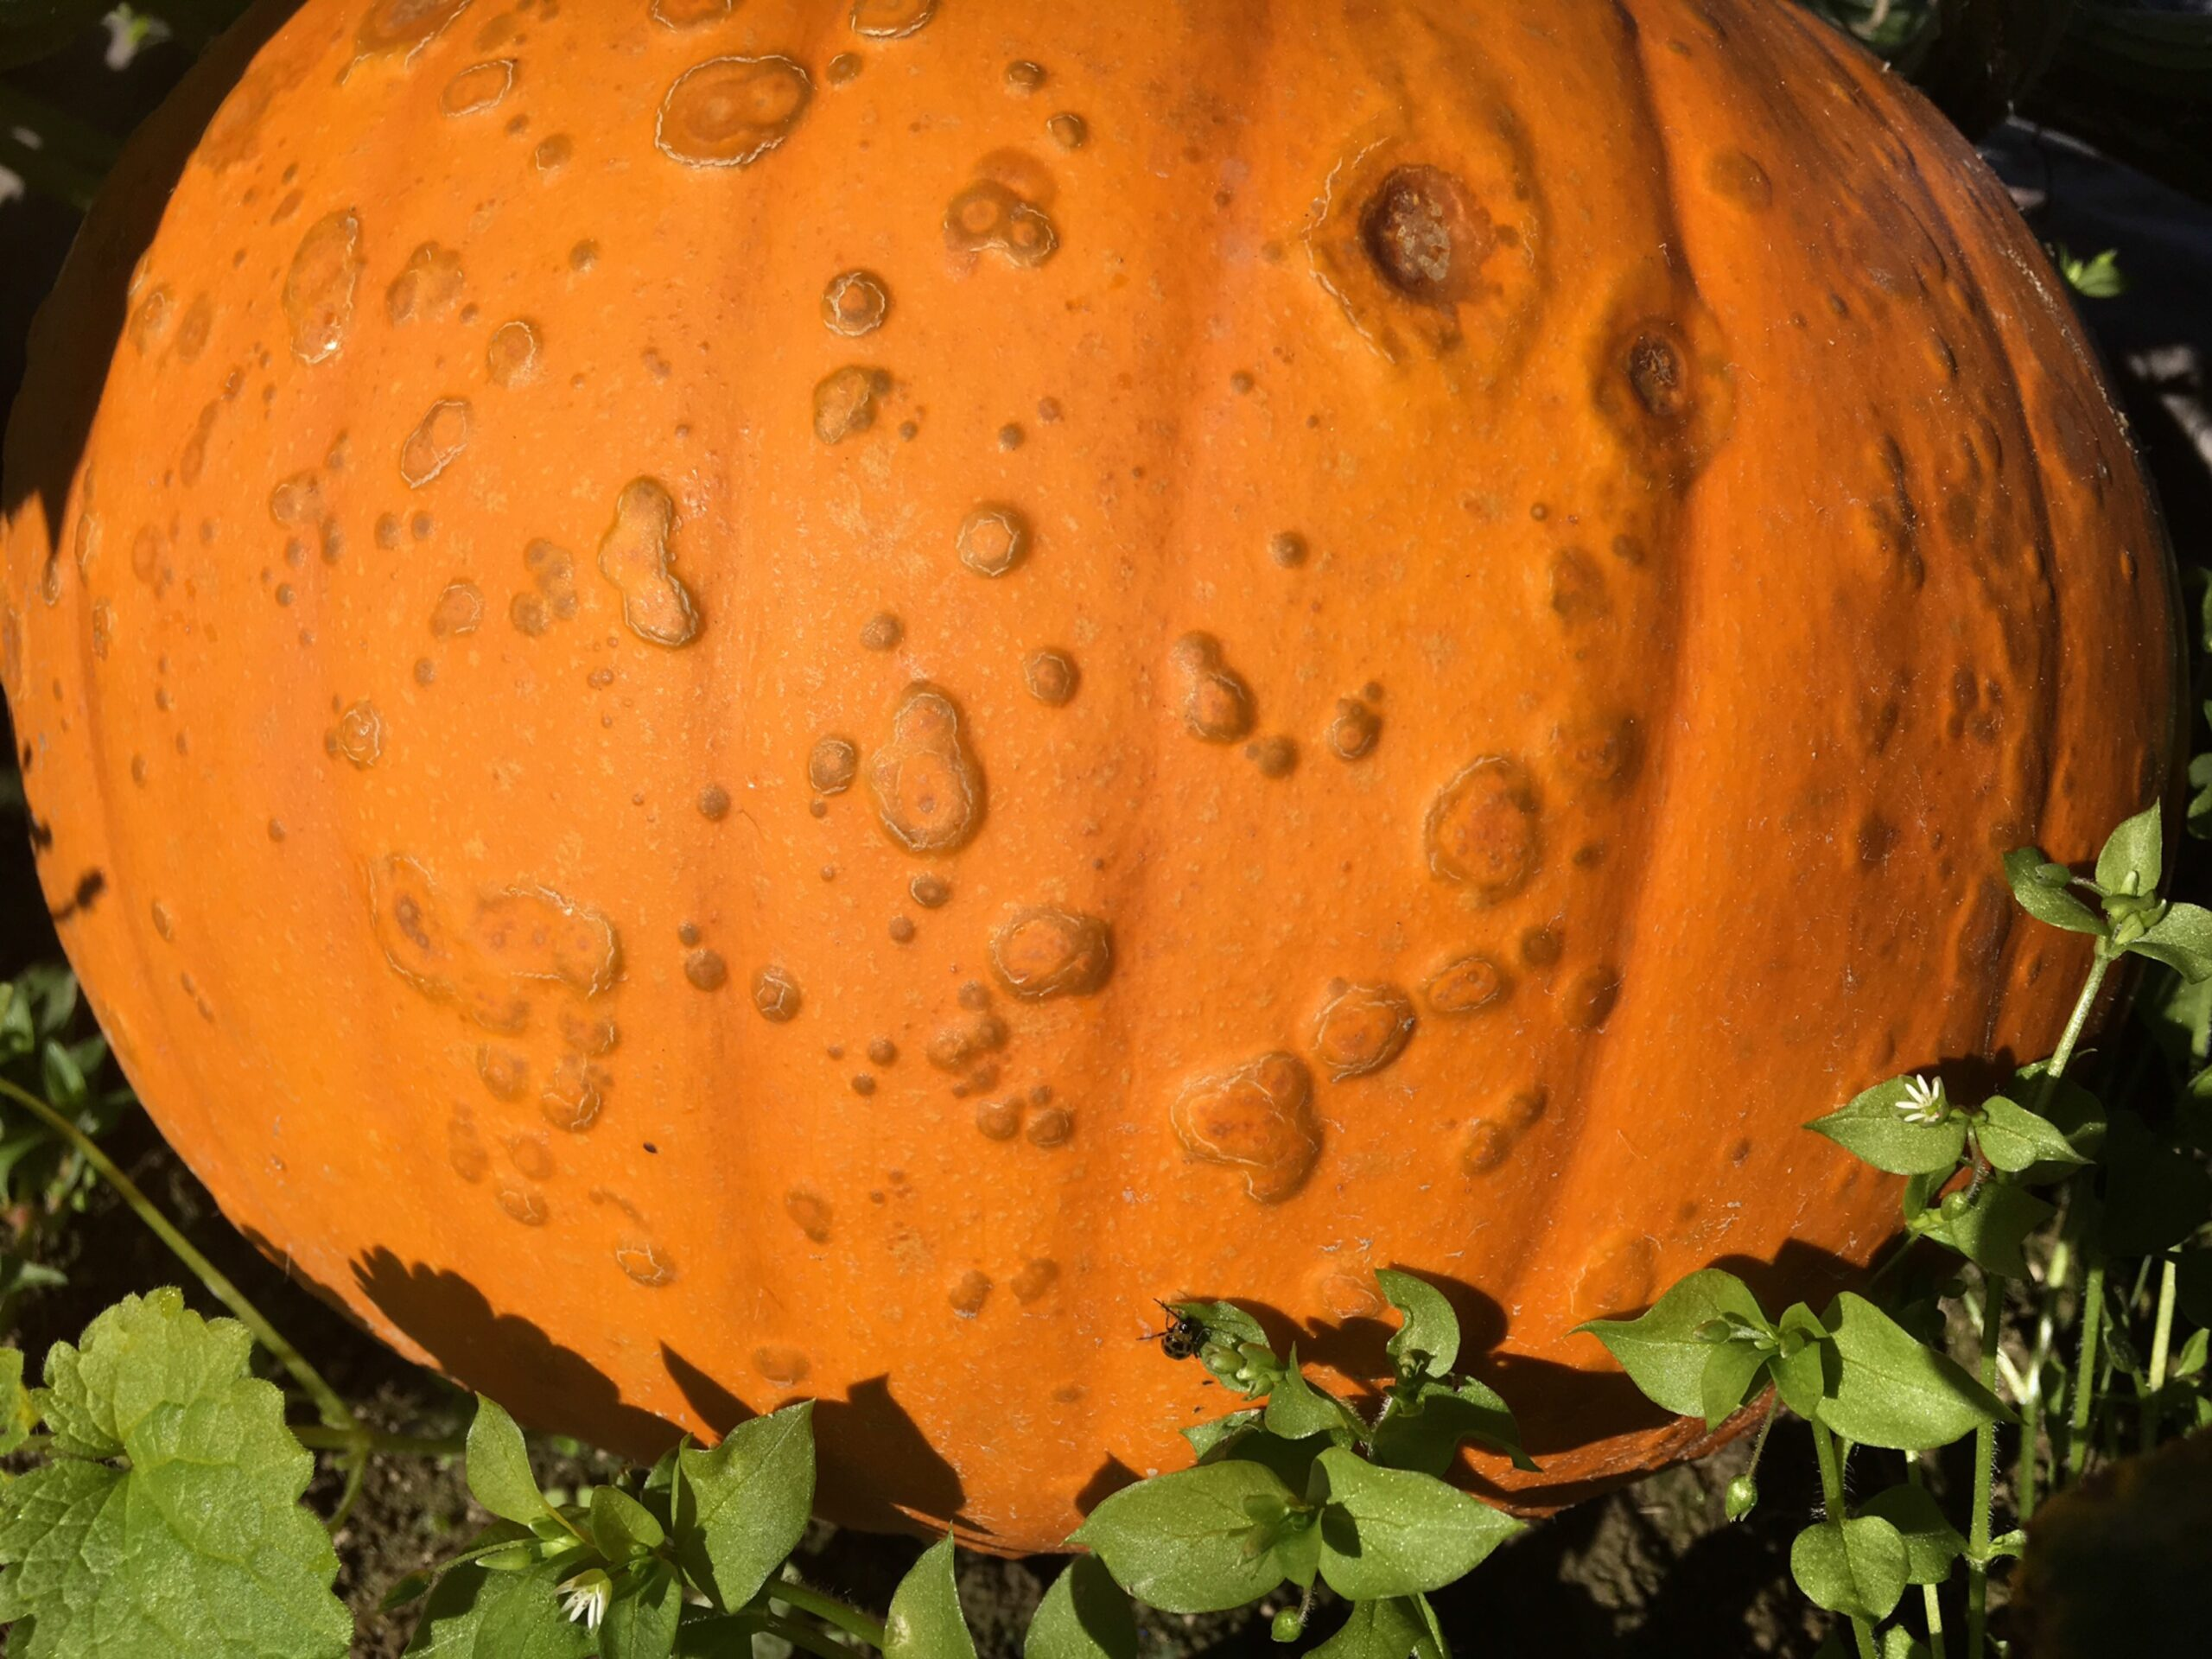 Warts cover a pumpkin infected with a bacterium, Pseudomonas syringae